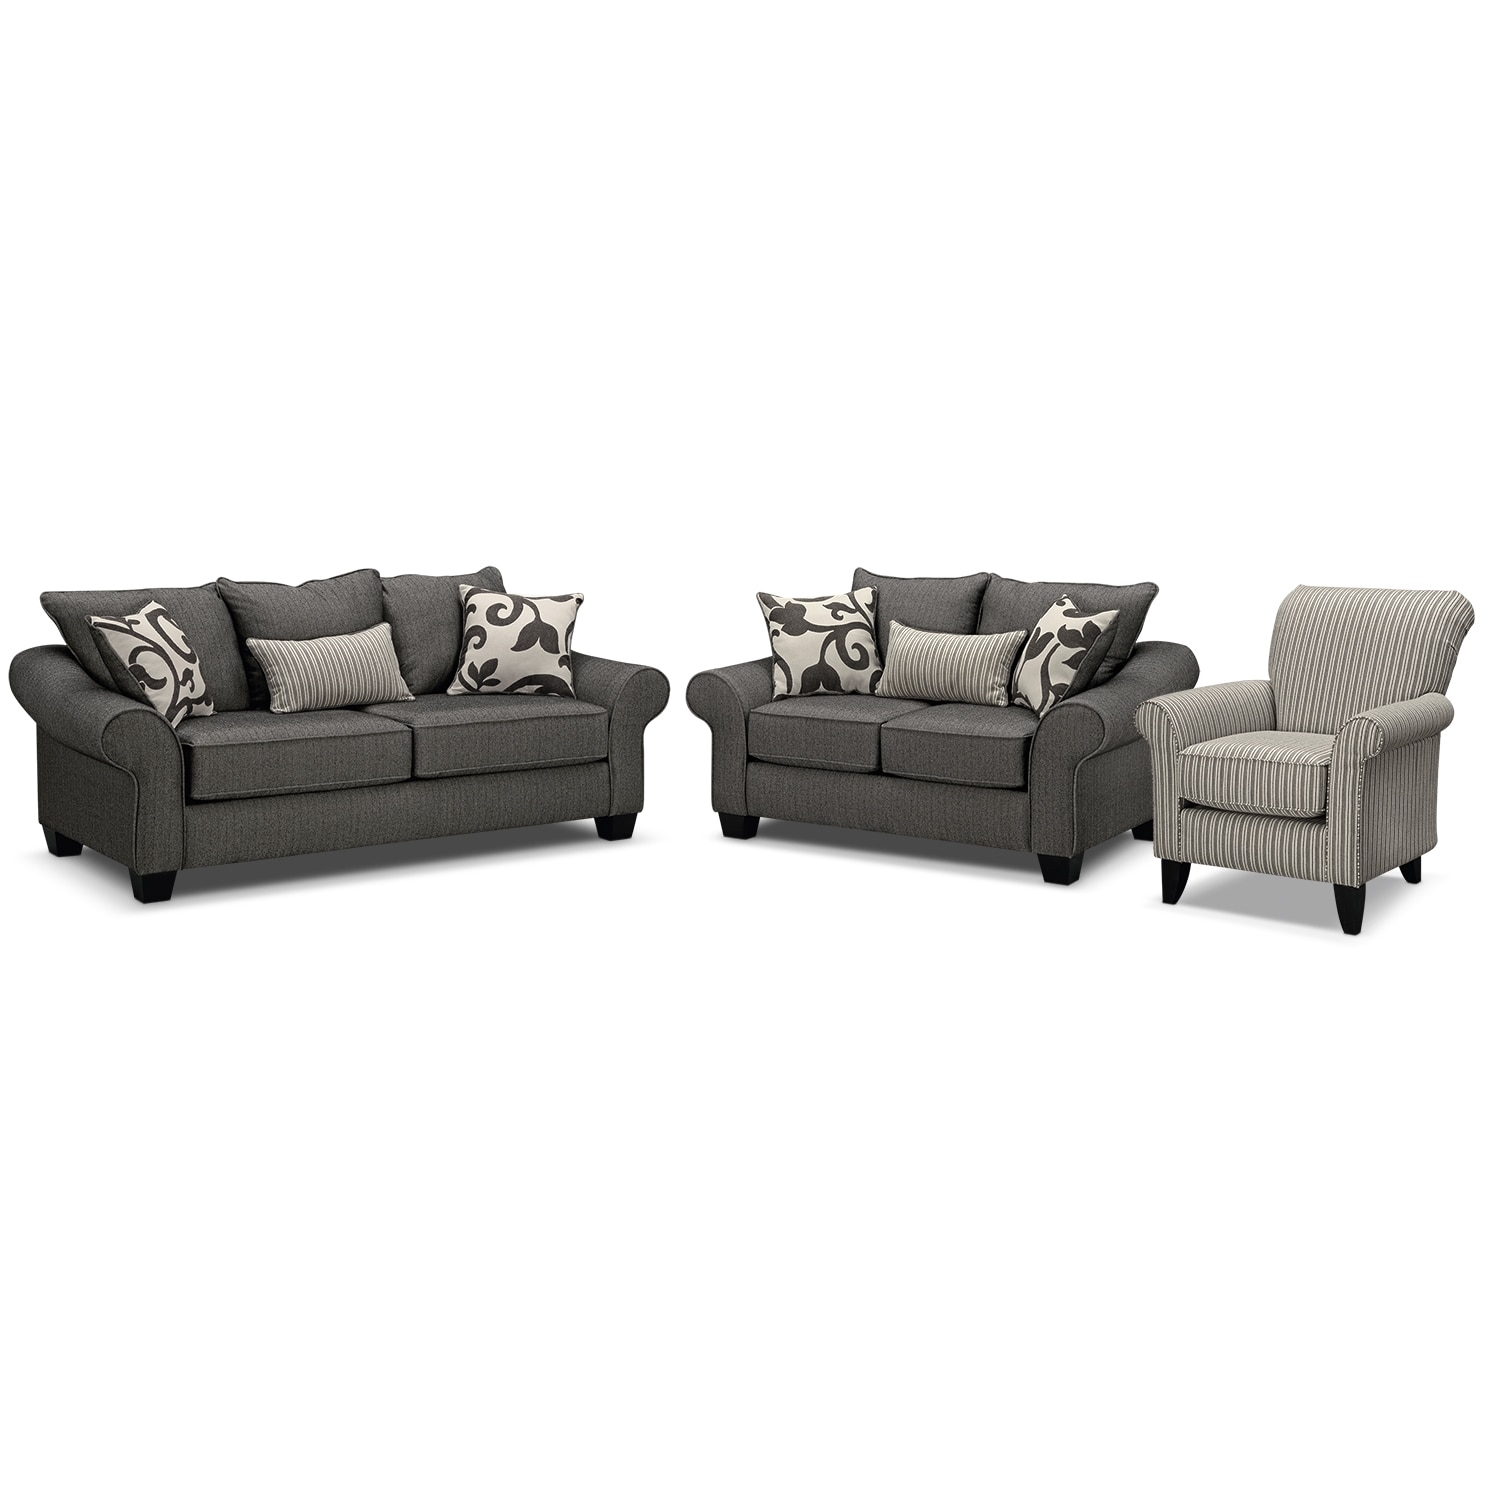 Living Room Furniture - Colette Gray 3 Pc. Living Room w/Accent Chair